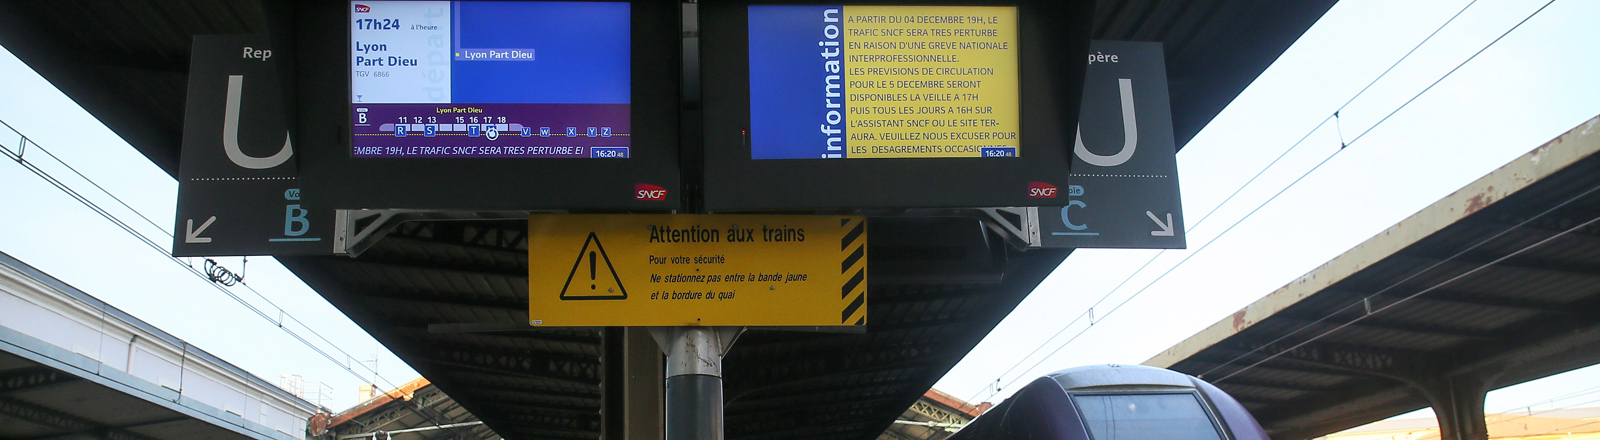 A Train Express Regional Auvergne Rhone Alpes (TER) train has stopped at the Valence Ville SNCF railway station due to a national strike appeal against the pension reform.